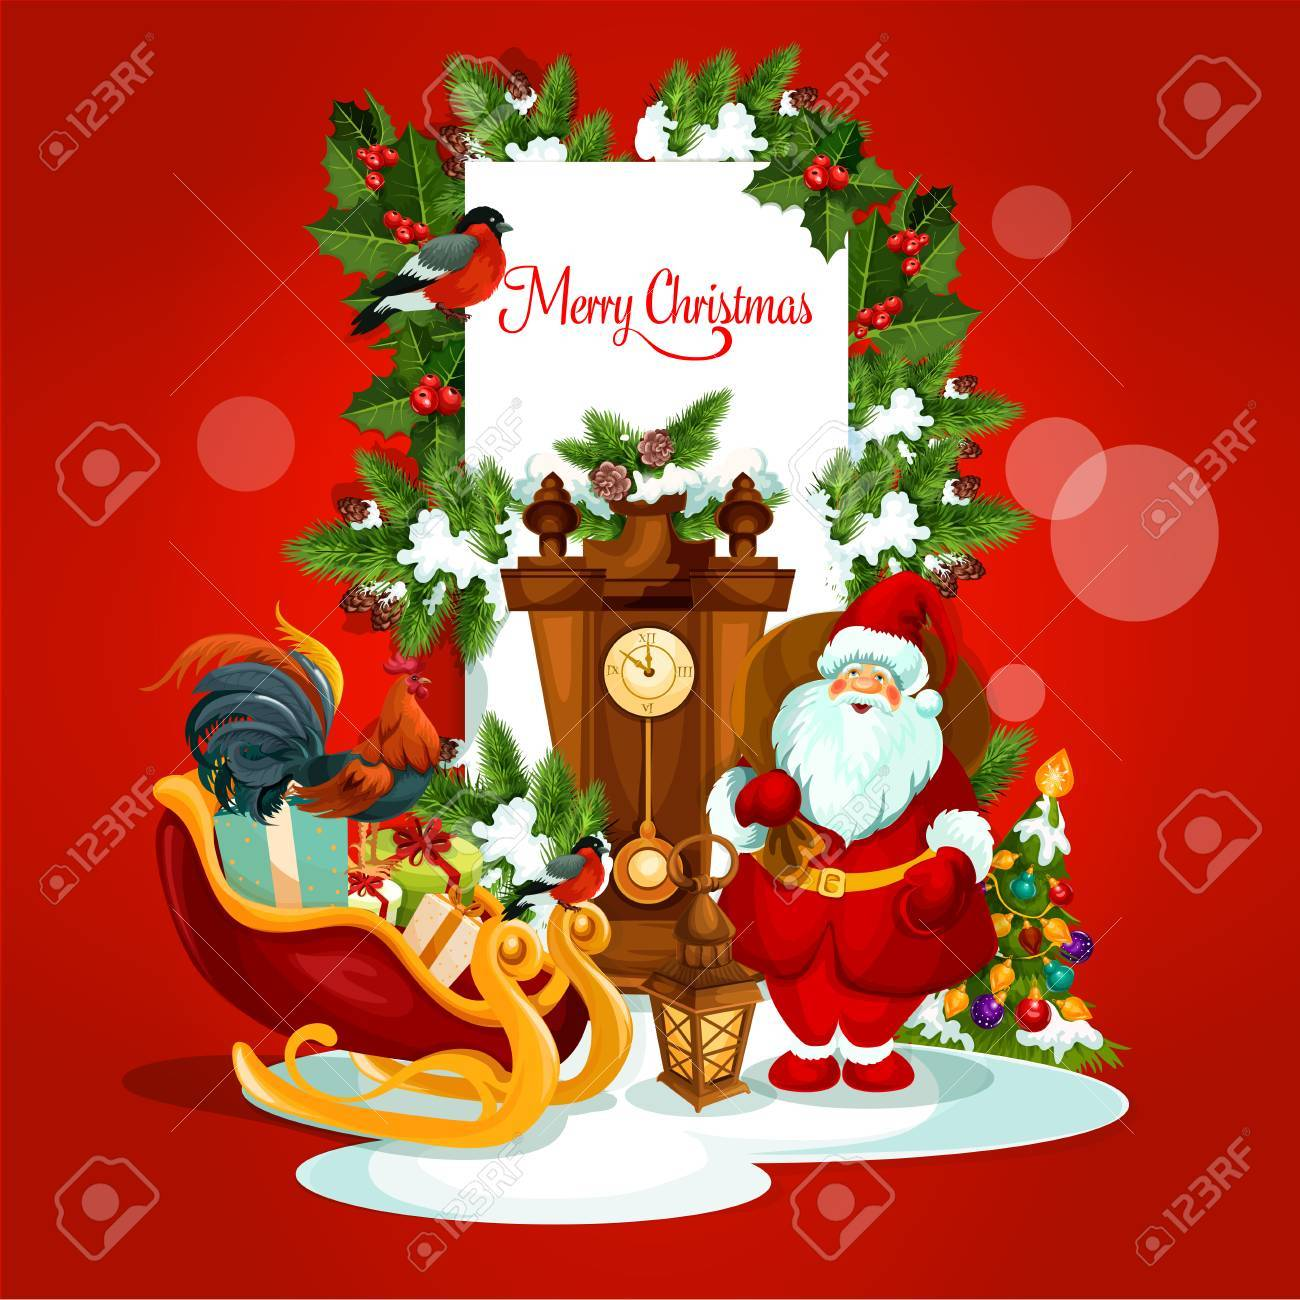 Merry Christmas Card Of Santa Claus With Gift, Xmas Tree With ...